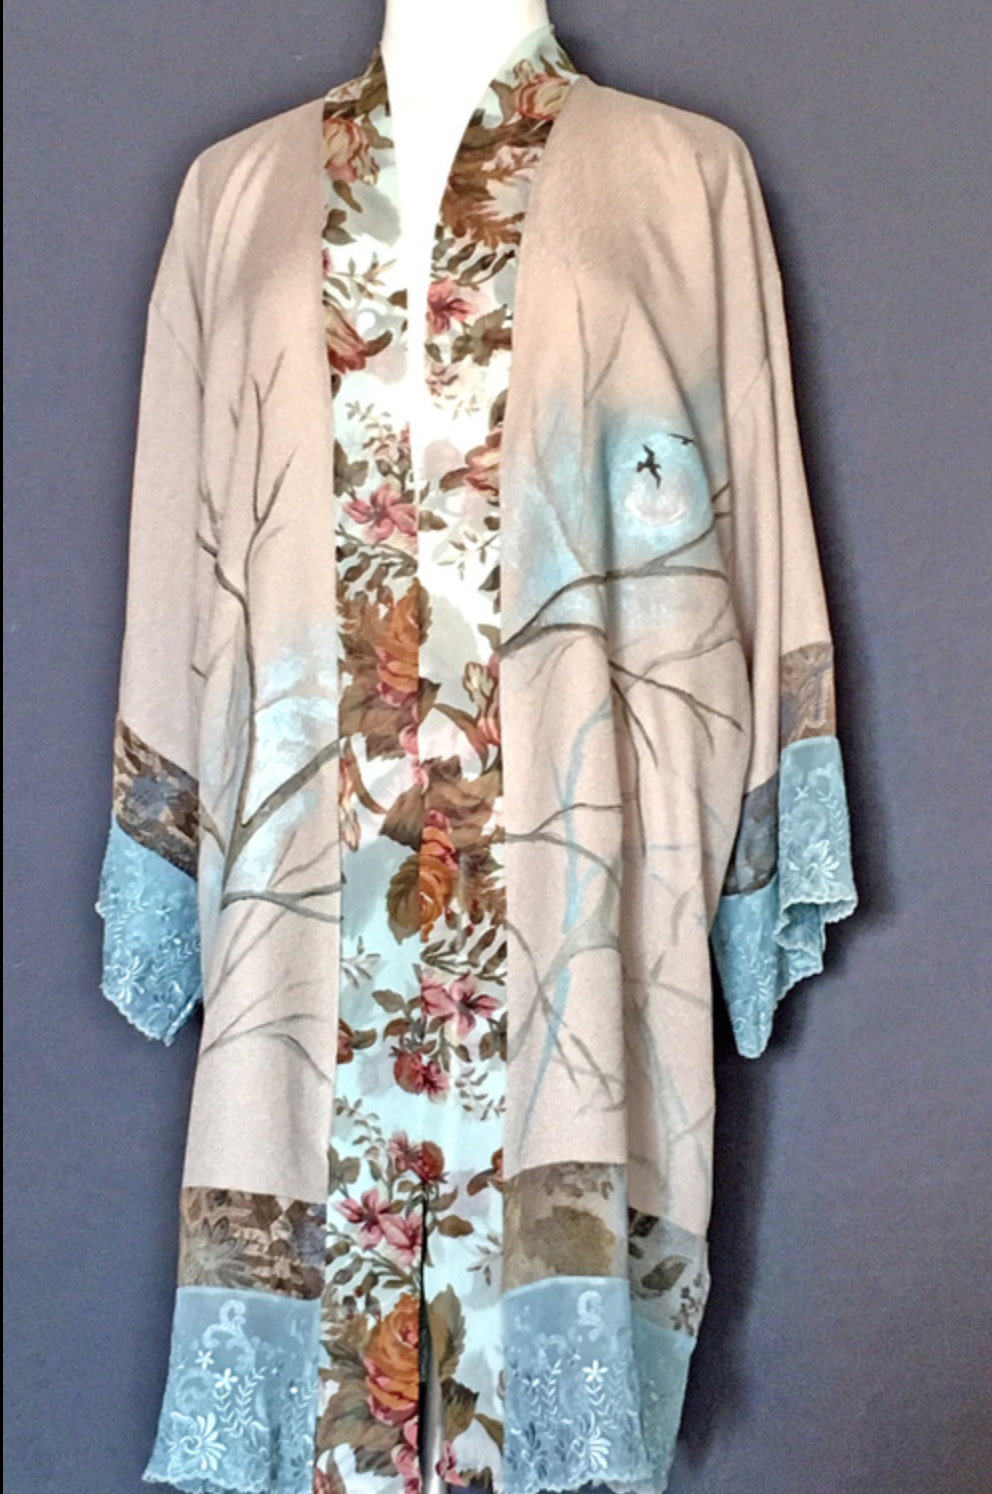 Dinah Lee - http://gowacambria.com,dinahlee.comChris & Dinah sketch out designs on paper,cut their own patterns.We hand paint, air-brush or digital print our fabrics.Silks, cottons and rayon fibers. Shawls,Scarfs,Capes, Jackets,dresses and tops.